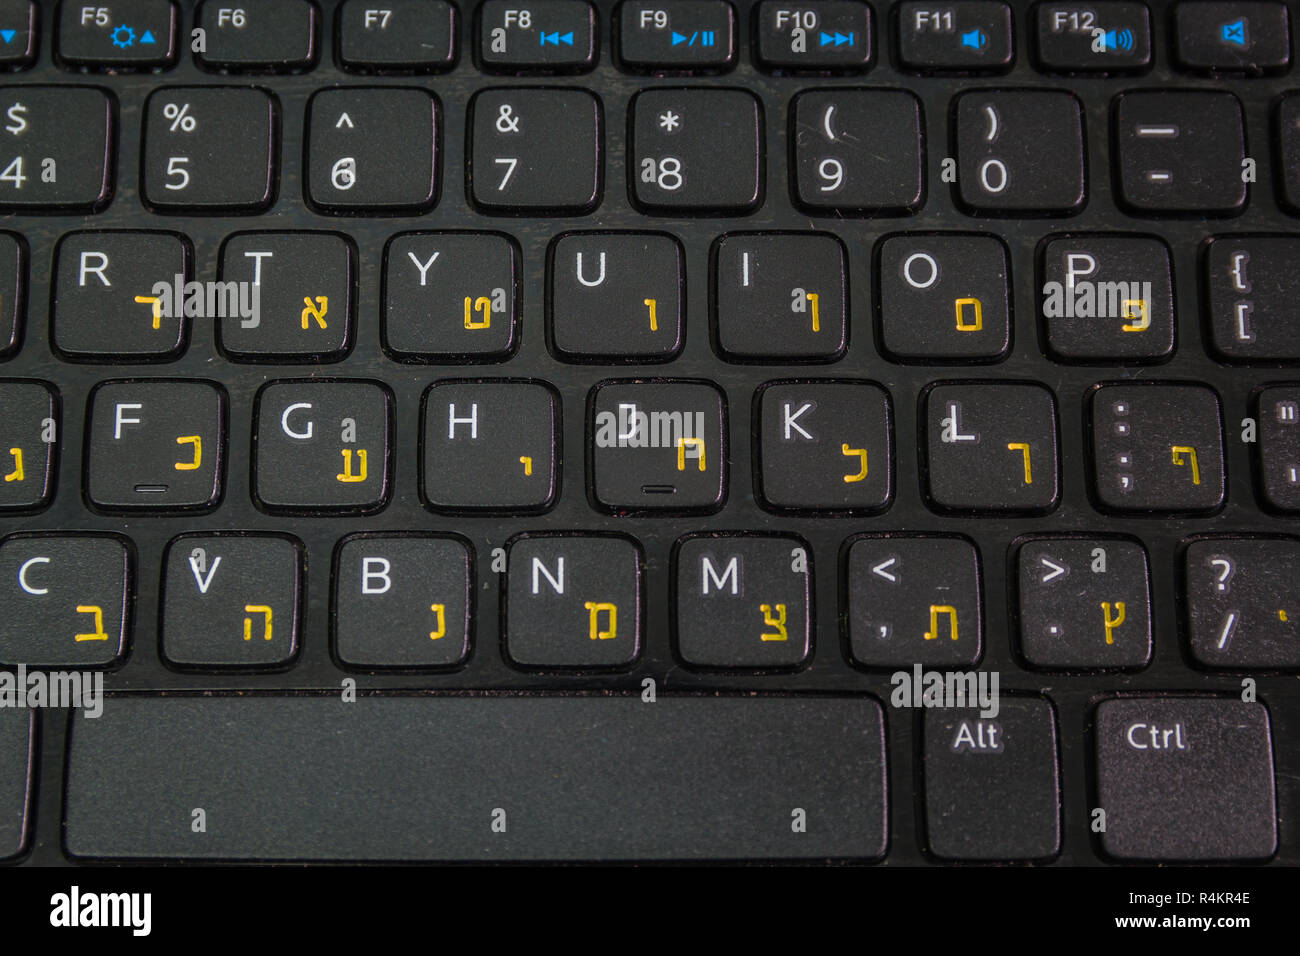 Keyboard with letters in Hebrew and English - Laptop keyboard - Top View - Close up - Stock Image